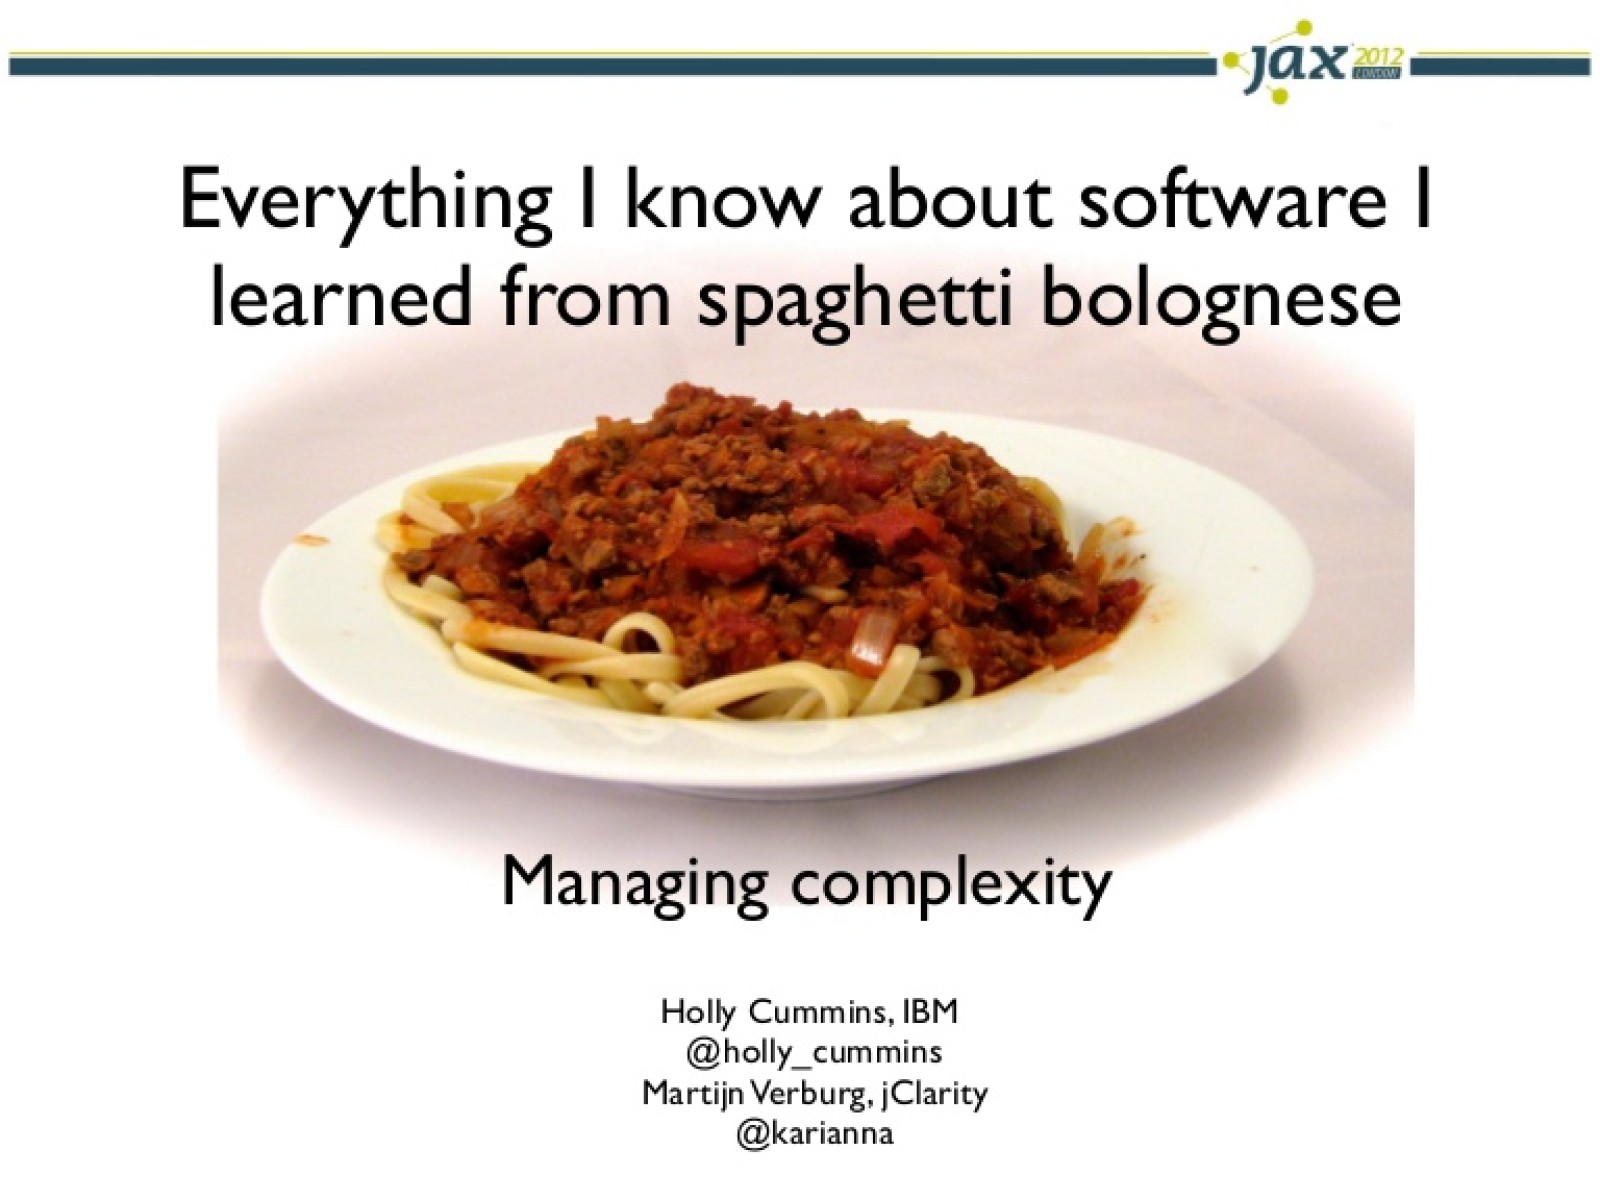 Everything I know about software, I learnt from spaghetti bolognese